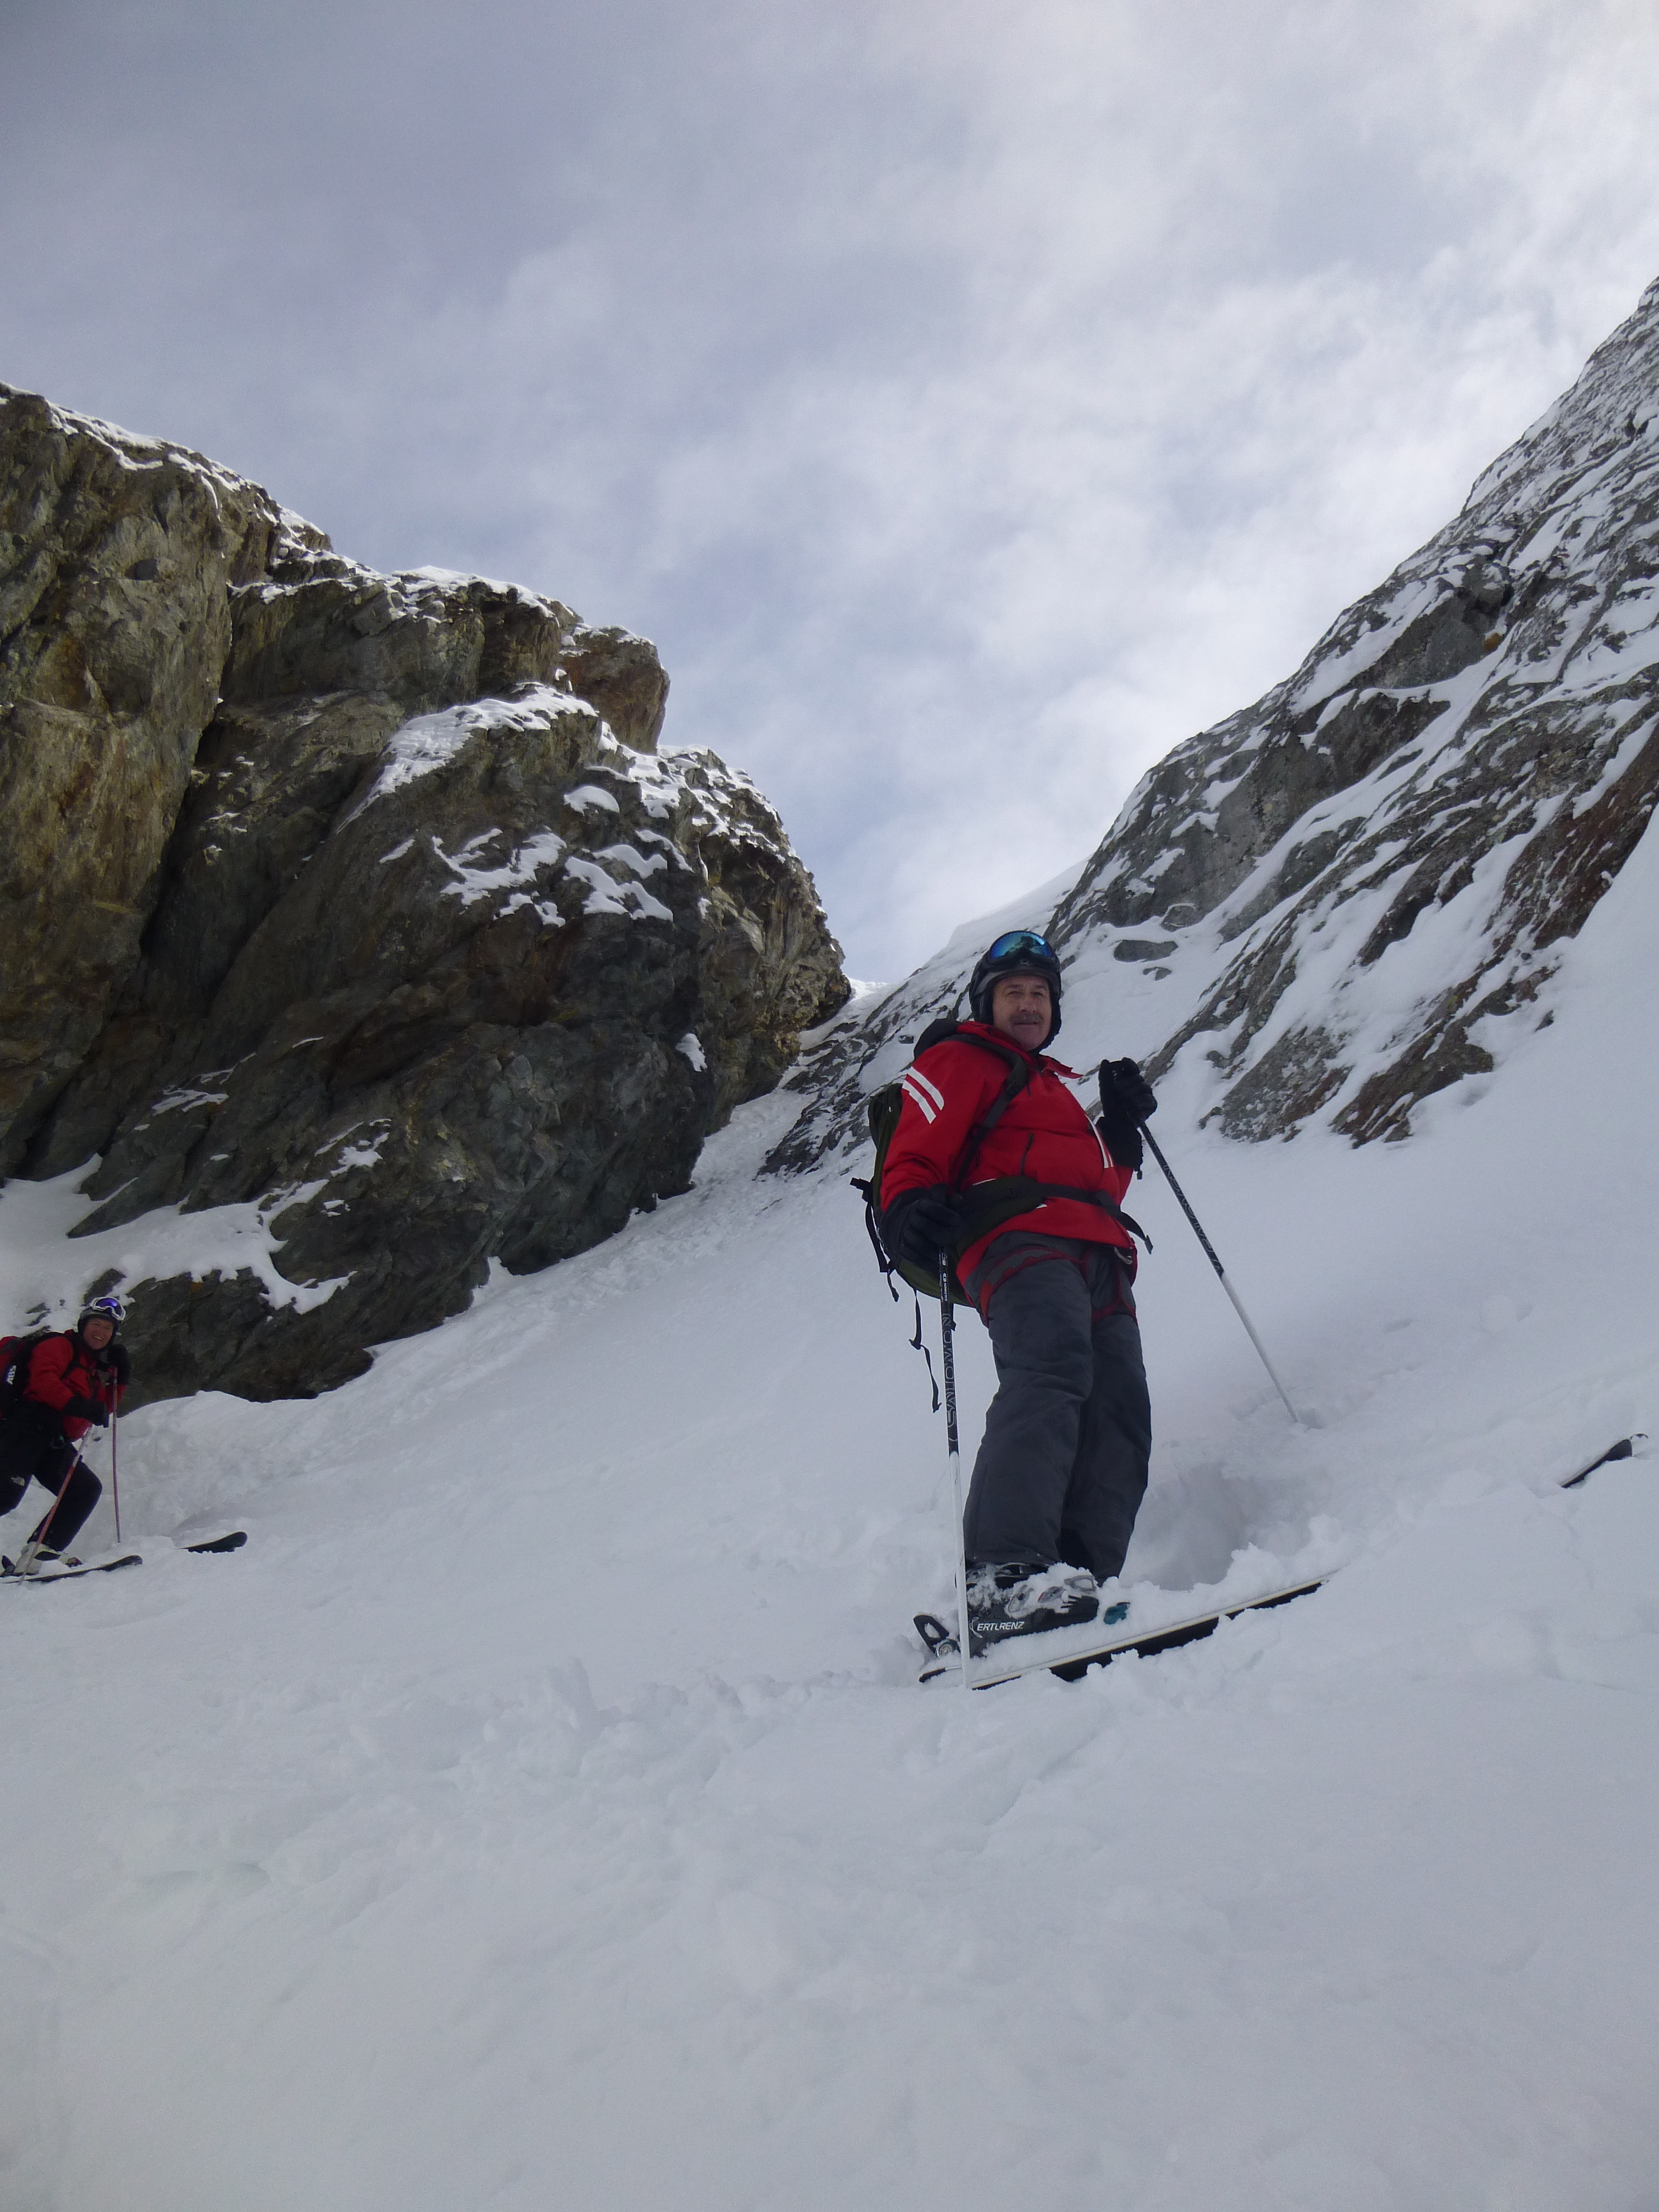 In the couloir, ready to ski!